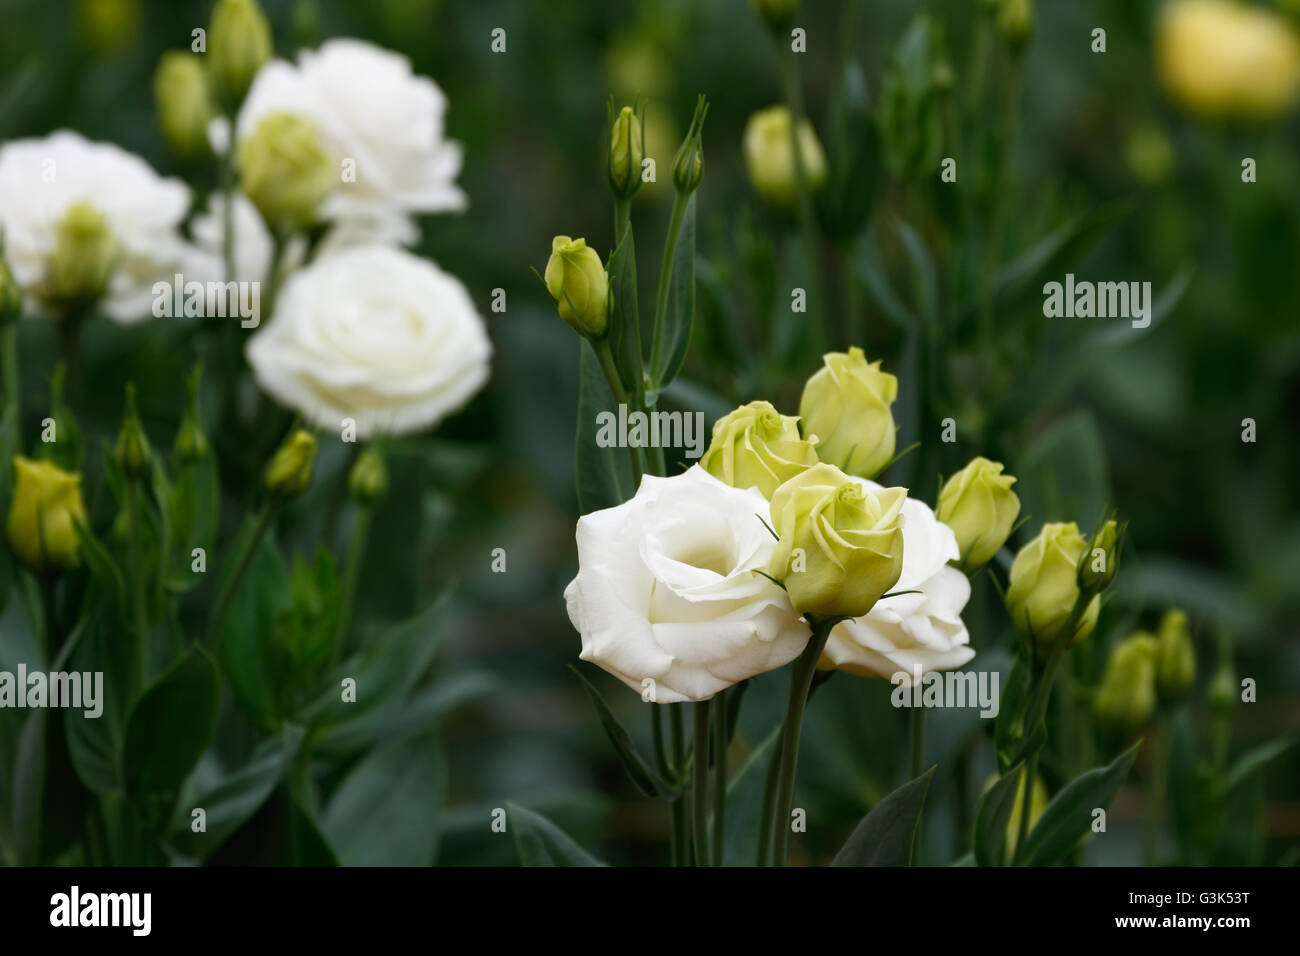 Fiori Che Assomigliano Alle Rose.Rose Like Flowers Immagini Rose Like Flowers Fotos Stock Alamy